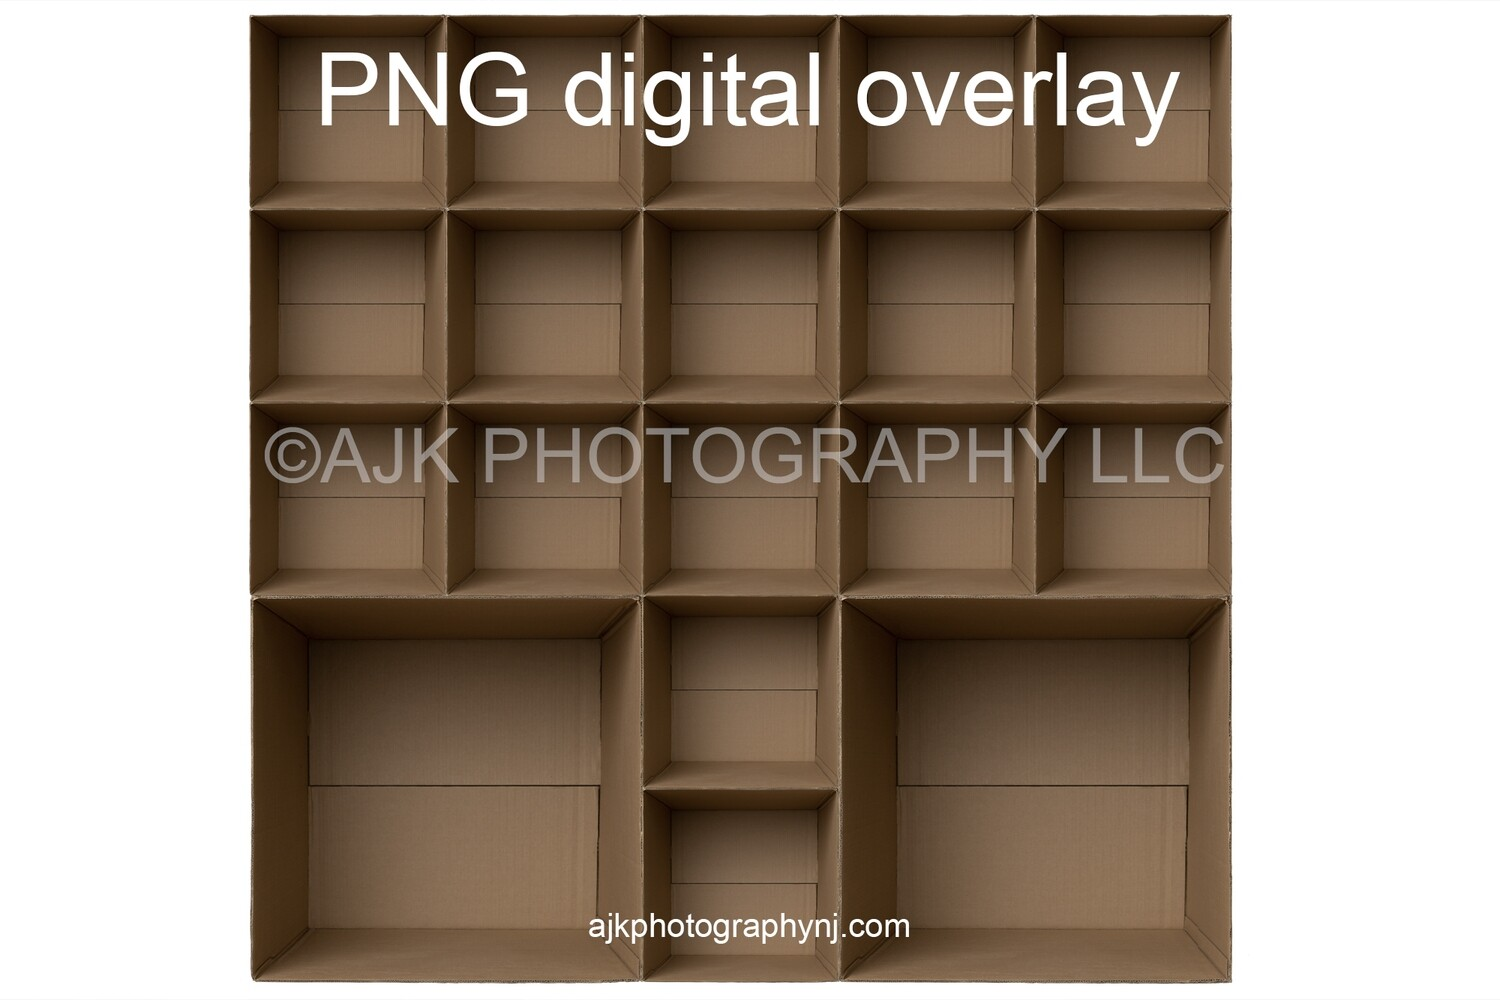 19 empty cardboard boxes template, class photo template, 2 teachers, 17 students, PNG Digital Overlay